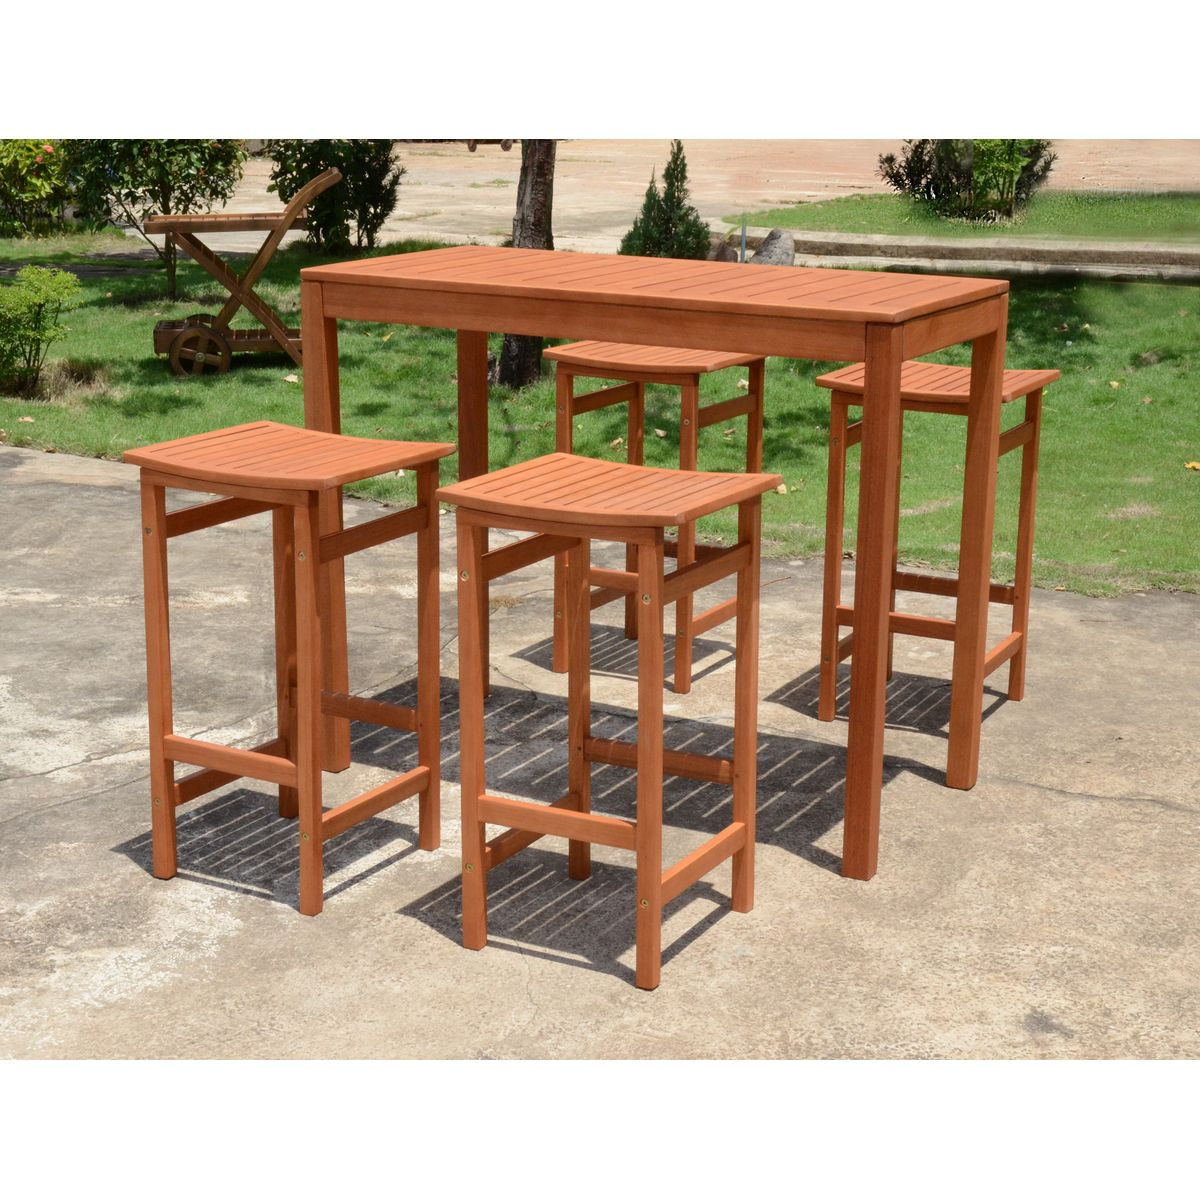 5 tlg bar set barhocker thekenhocker hocker bar theke tisch holz eukalyptus ebay. Black Bedroom Furniture Sets. Home Design Ideas